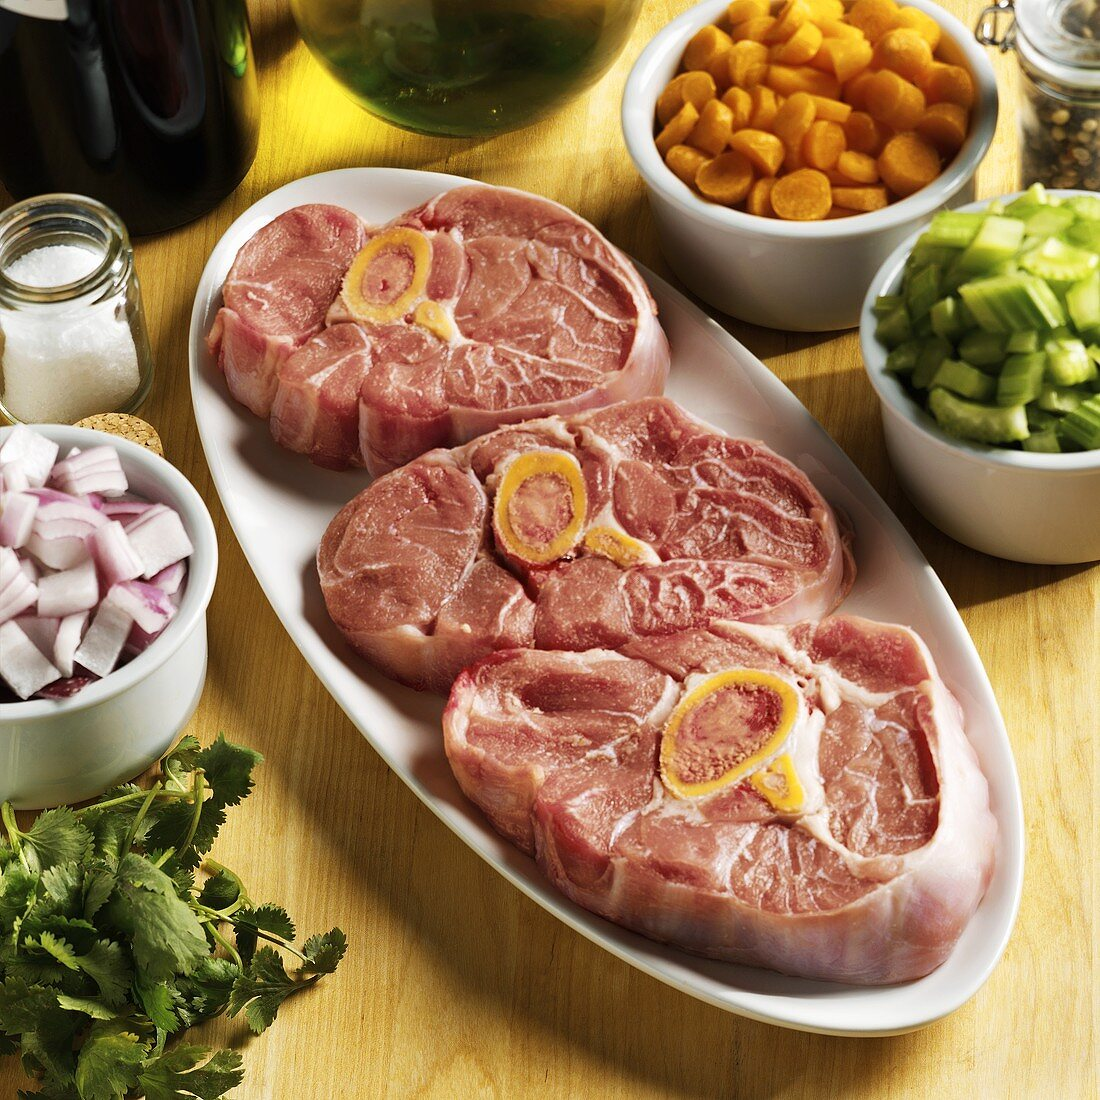 Ingredients for osso buco (veal shank slices & vegetables)